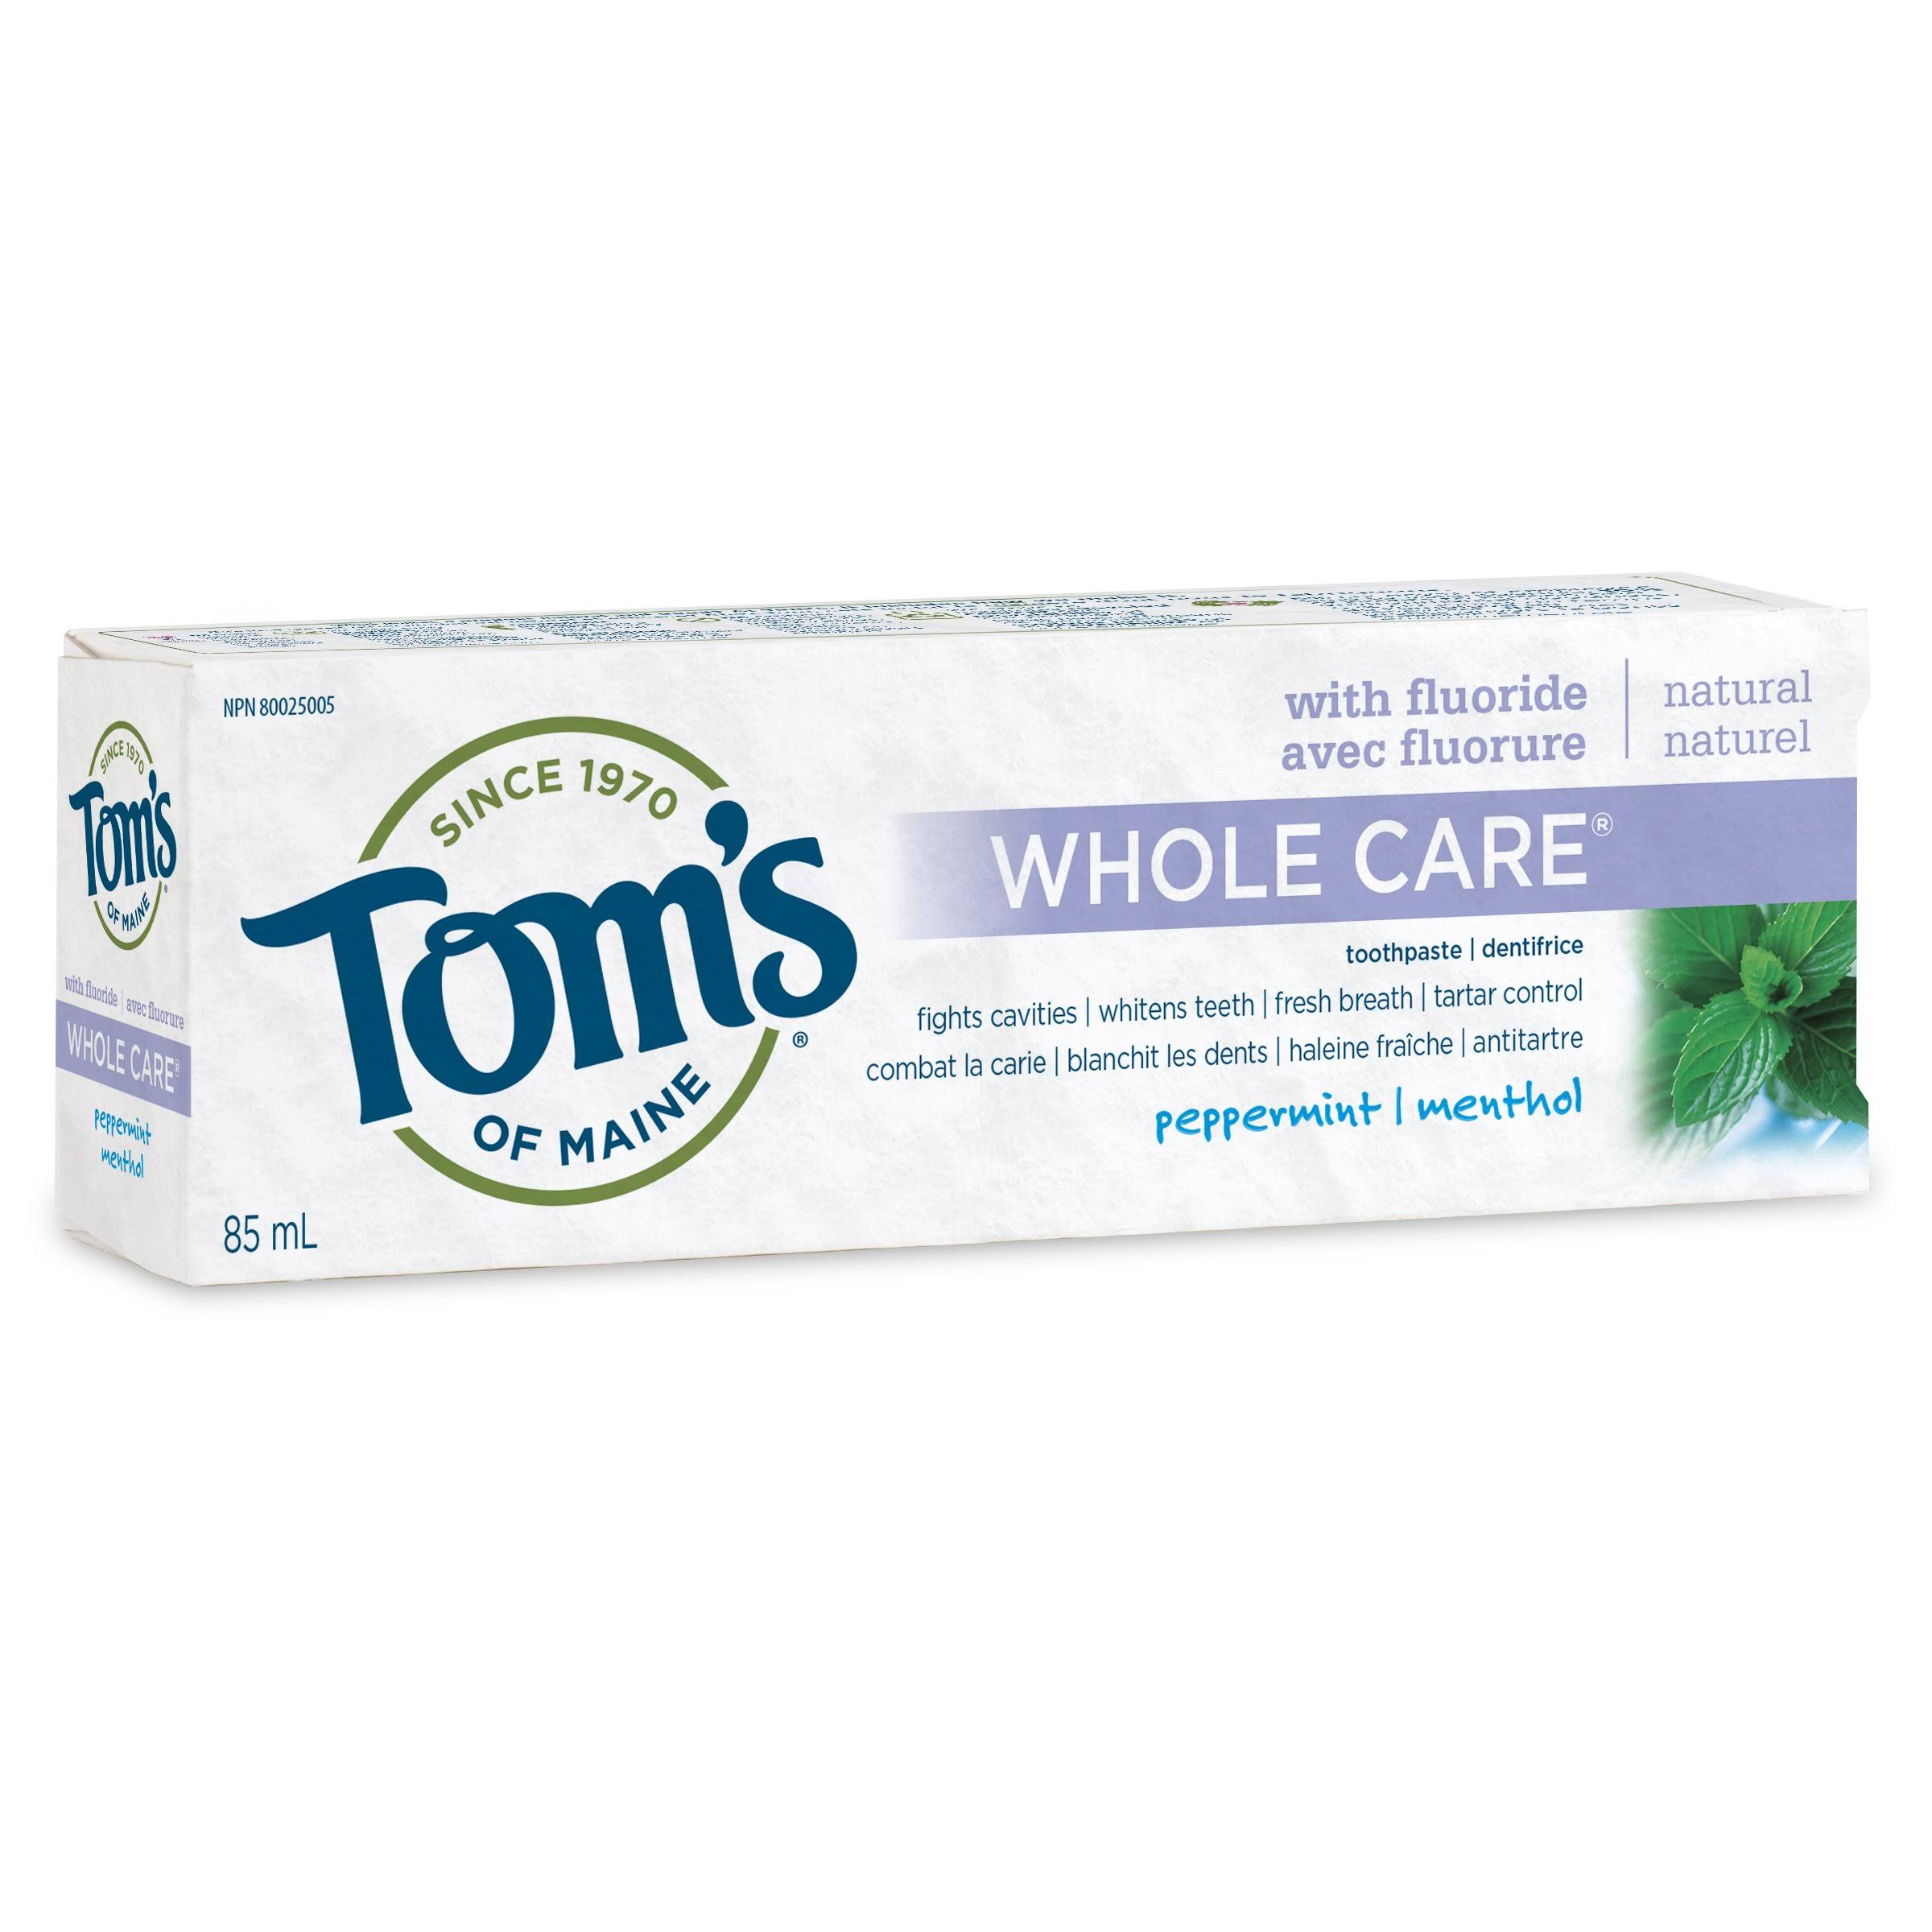 Tom's of Maine Whole Care Natural Toothpaste - Peppermint, 85 ml